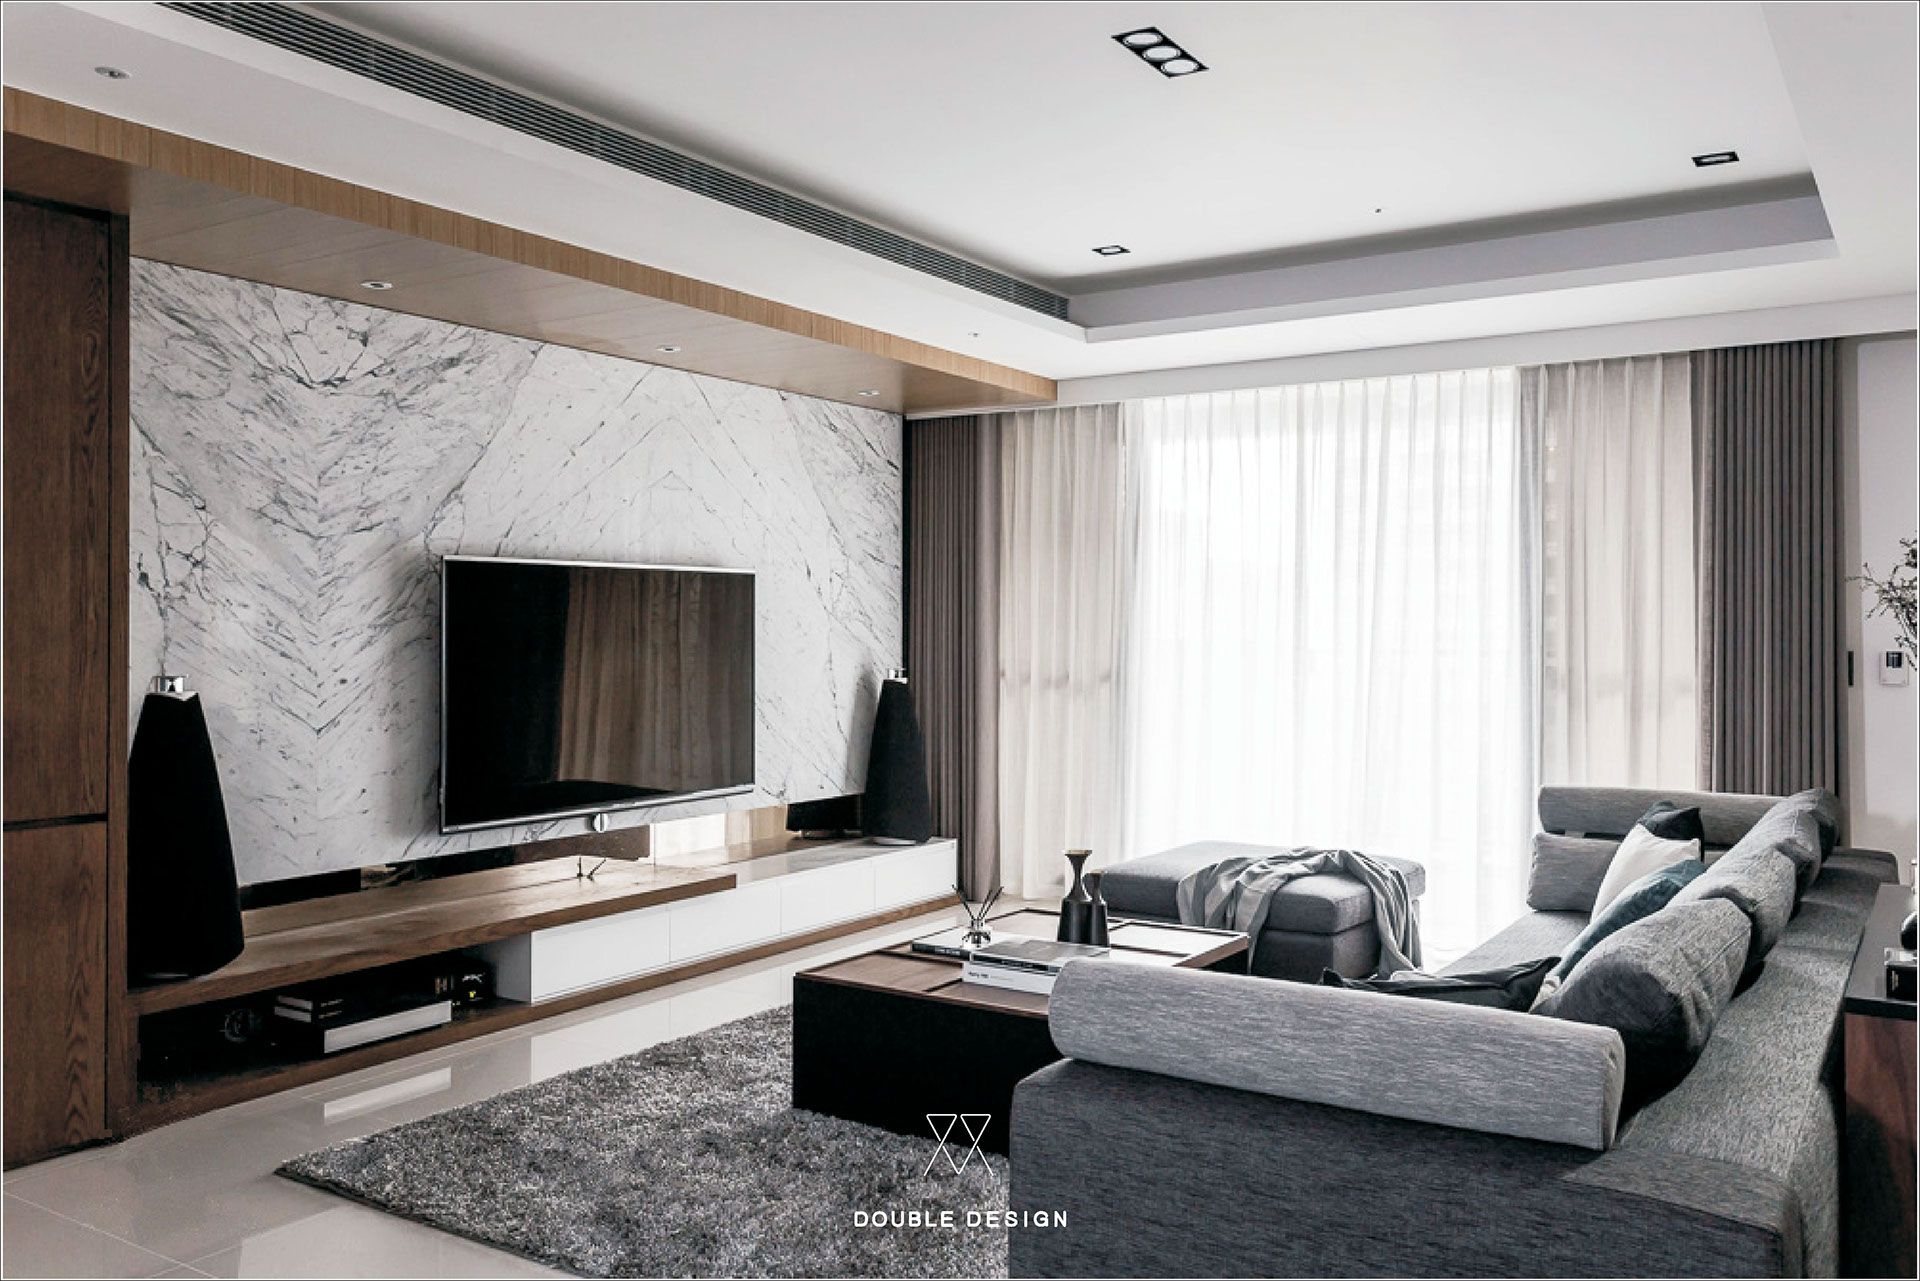 Pin by Duc Pham on Bedroom -Neo Classic | Pinterest | Living rooms ...